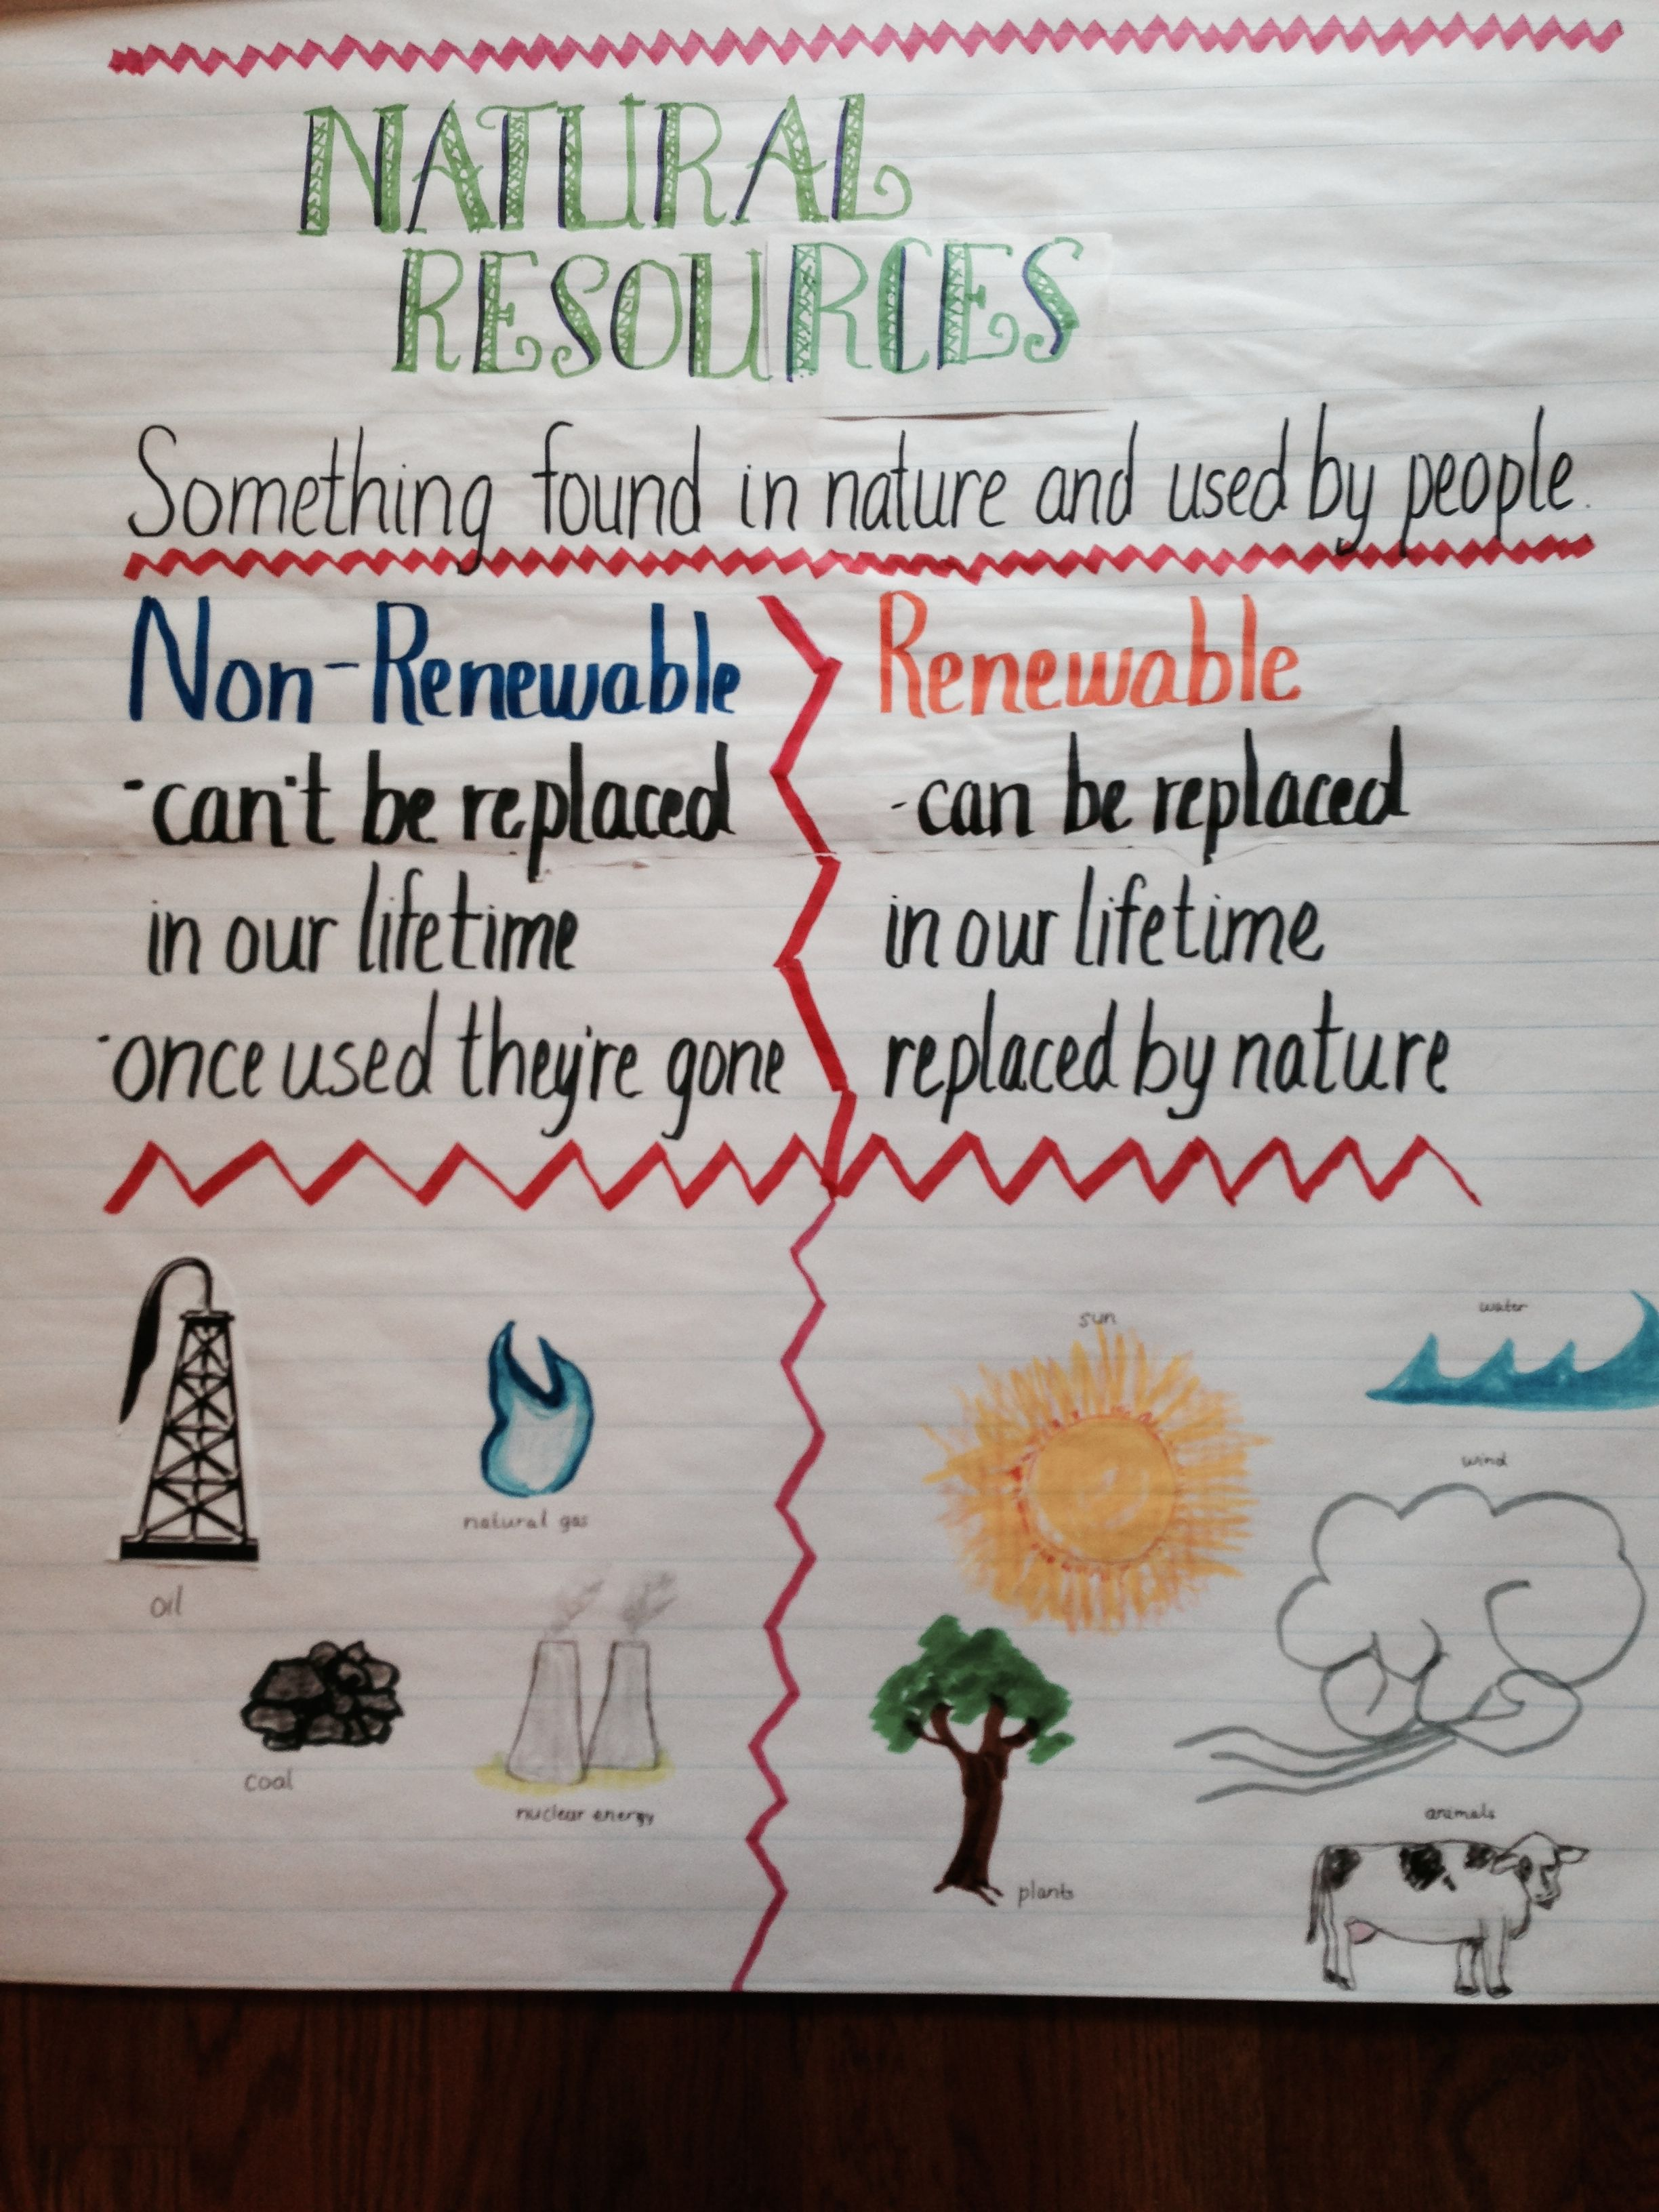 Studying Natural Resources Identify Non Renewable And Renewable Resources